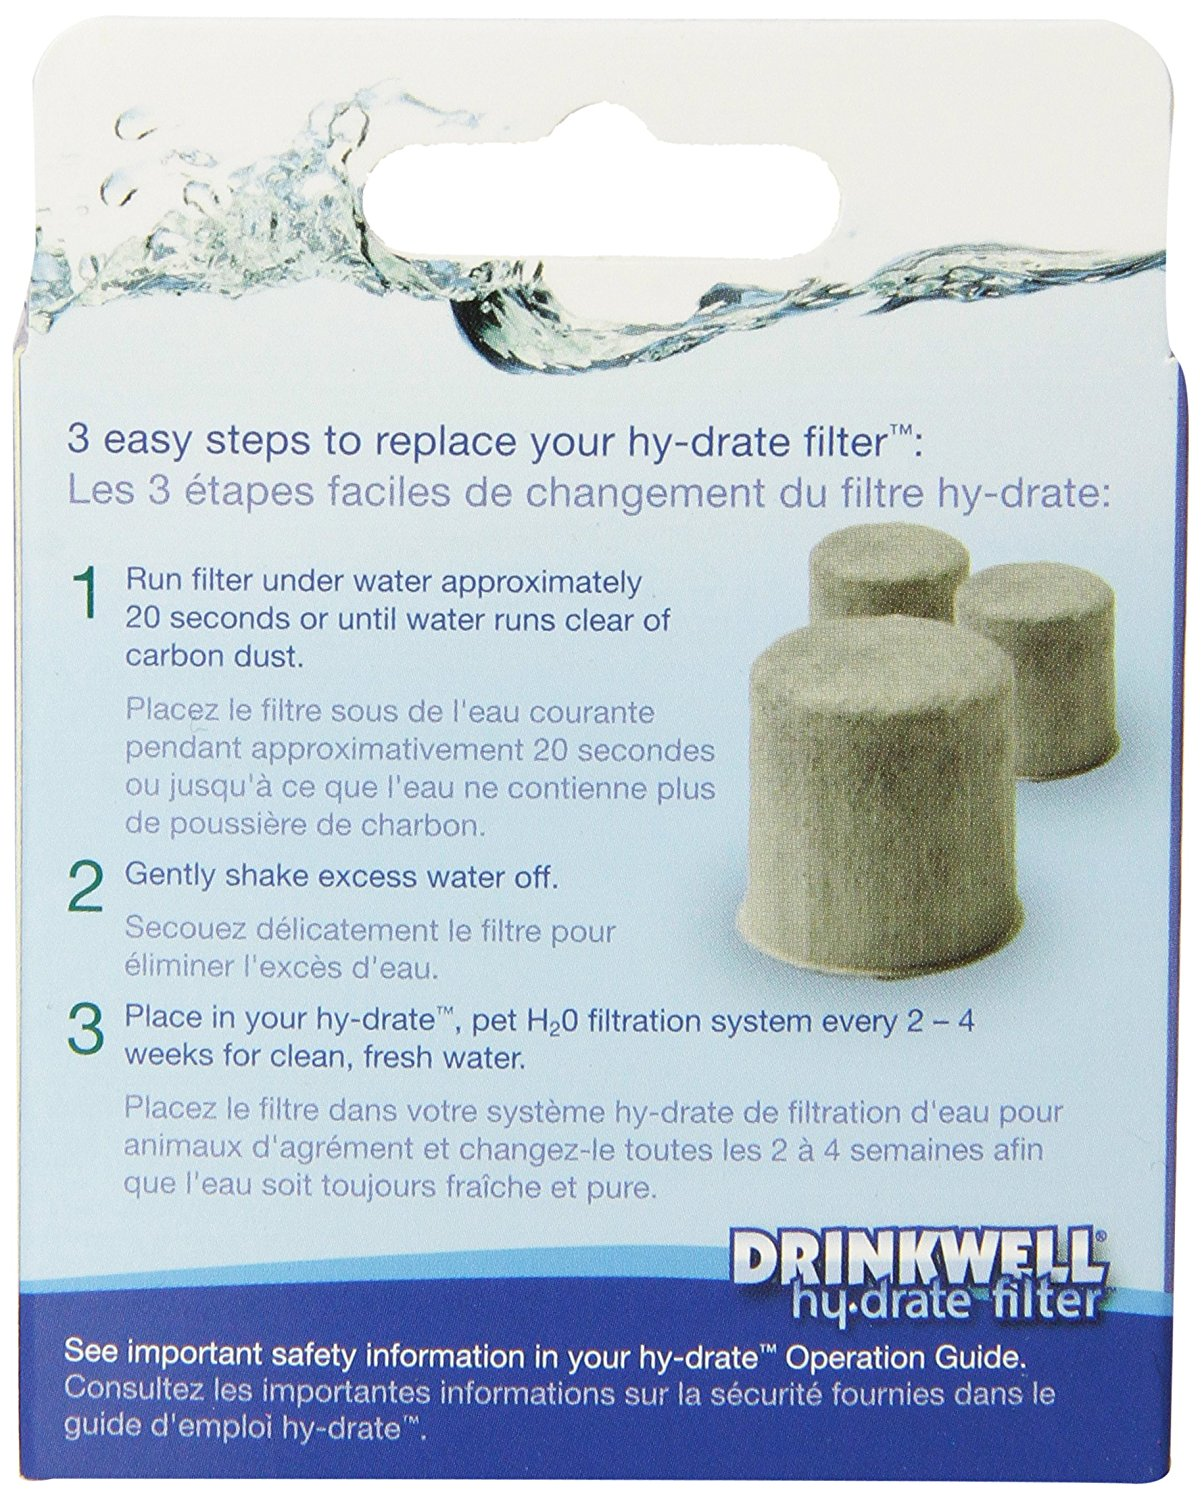 Petsafe Pfd17-12905 Drinkwell Hy-drate Replacement Filter...